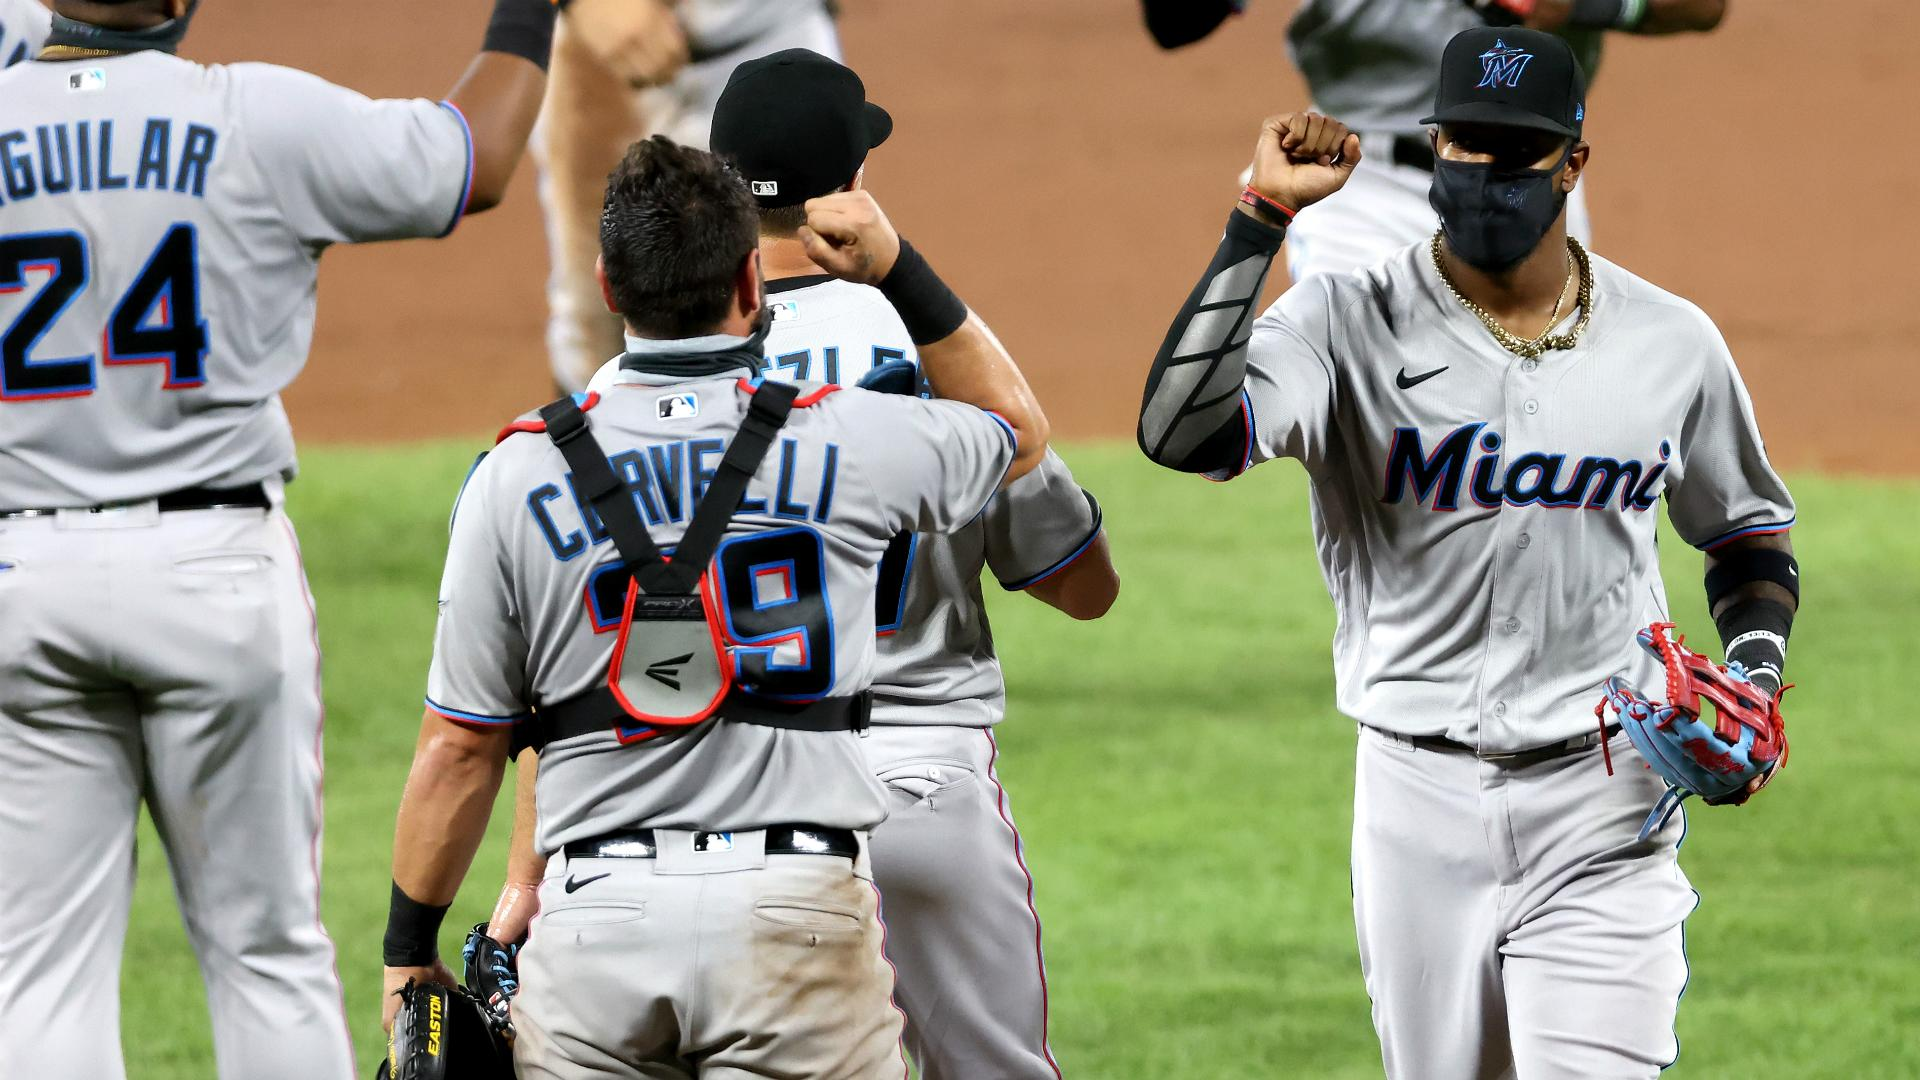 Marlins blank Orioles in first appearance since Opening Day, Nats also return from COVID-19 absence